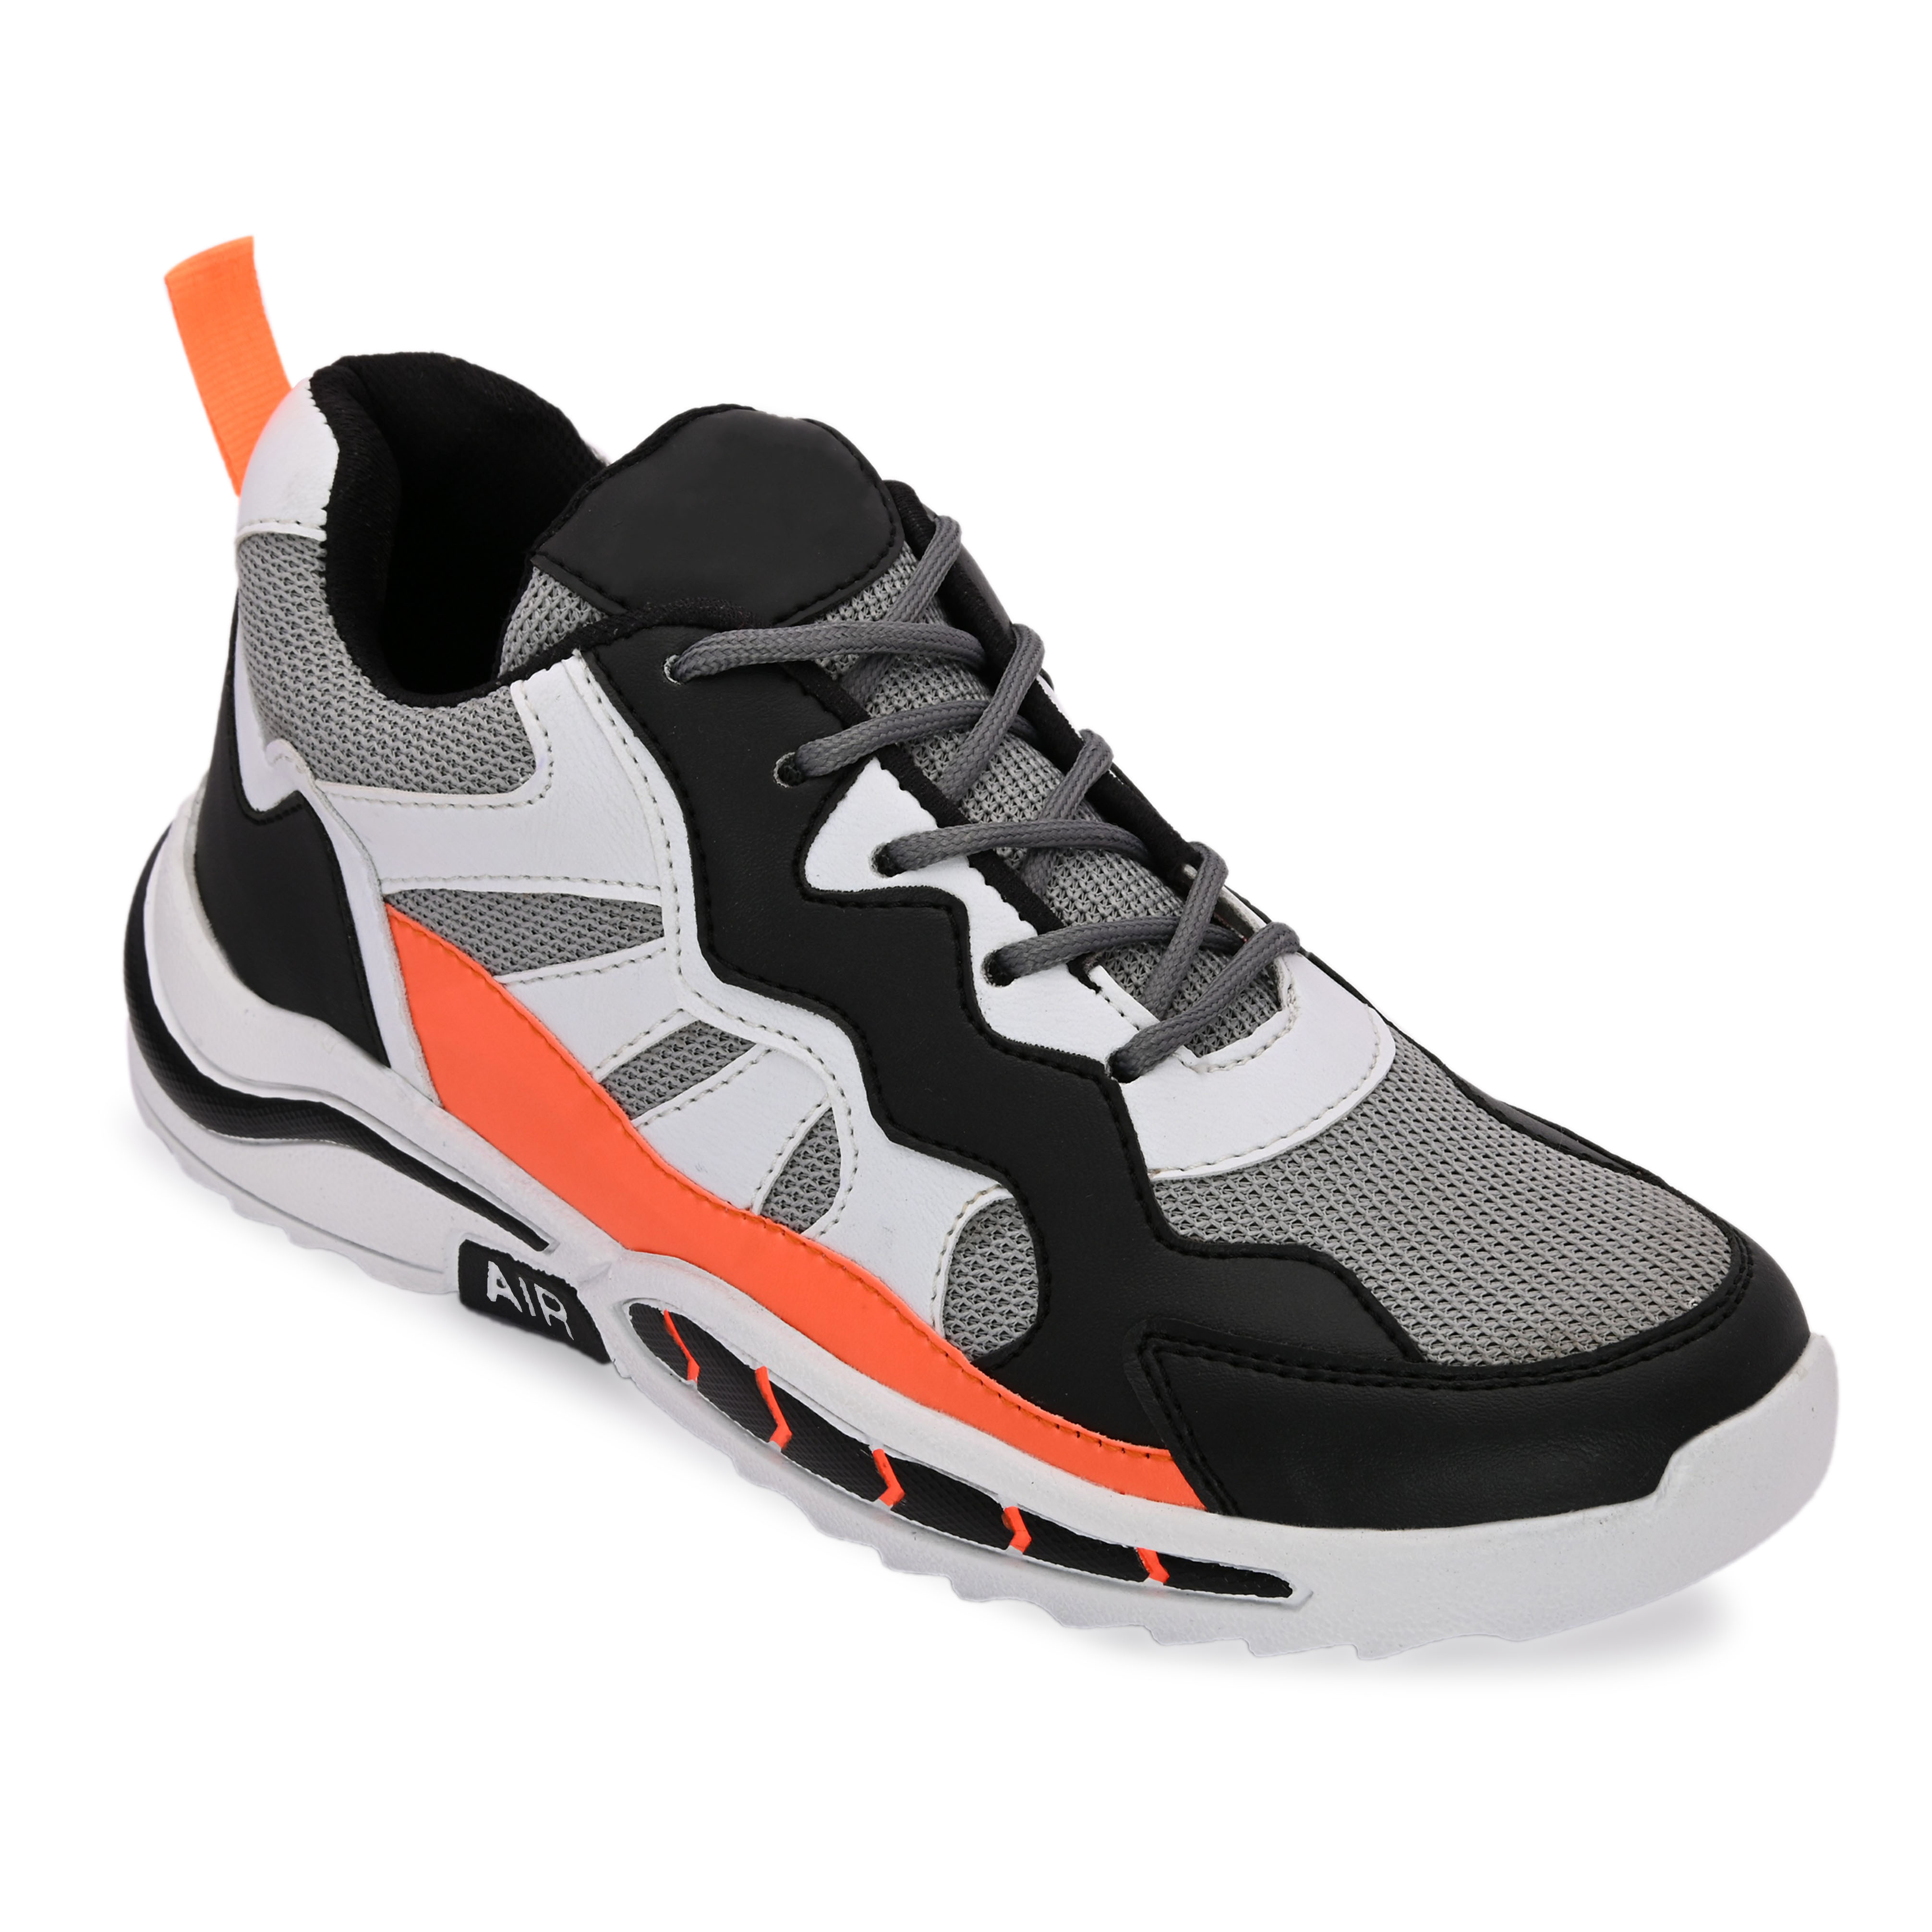 BRIFAR COMFORTABLE & TRENDY SPORTS SHOES ARE RELIABLE FOR ANY BFS0816ORG (6-9, ORANGE, 4 PAIR)